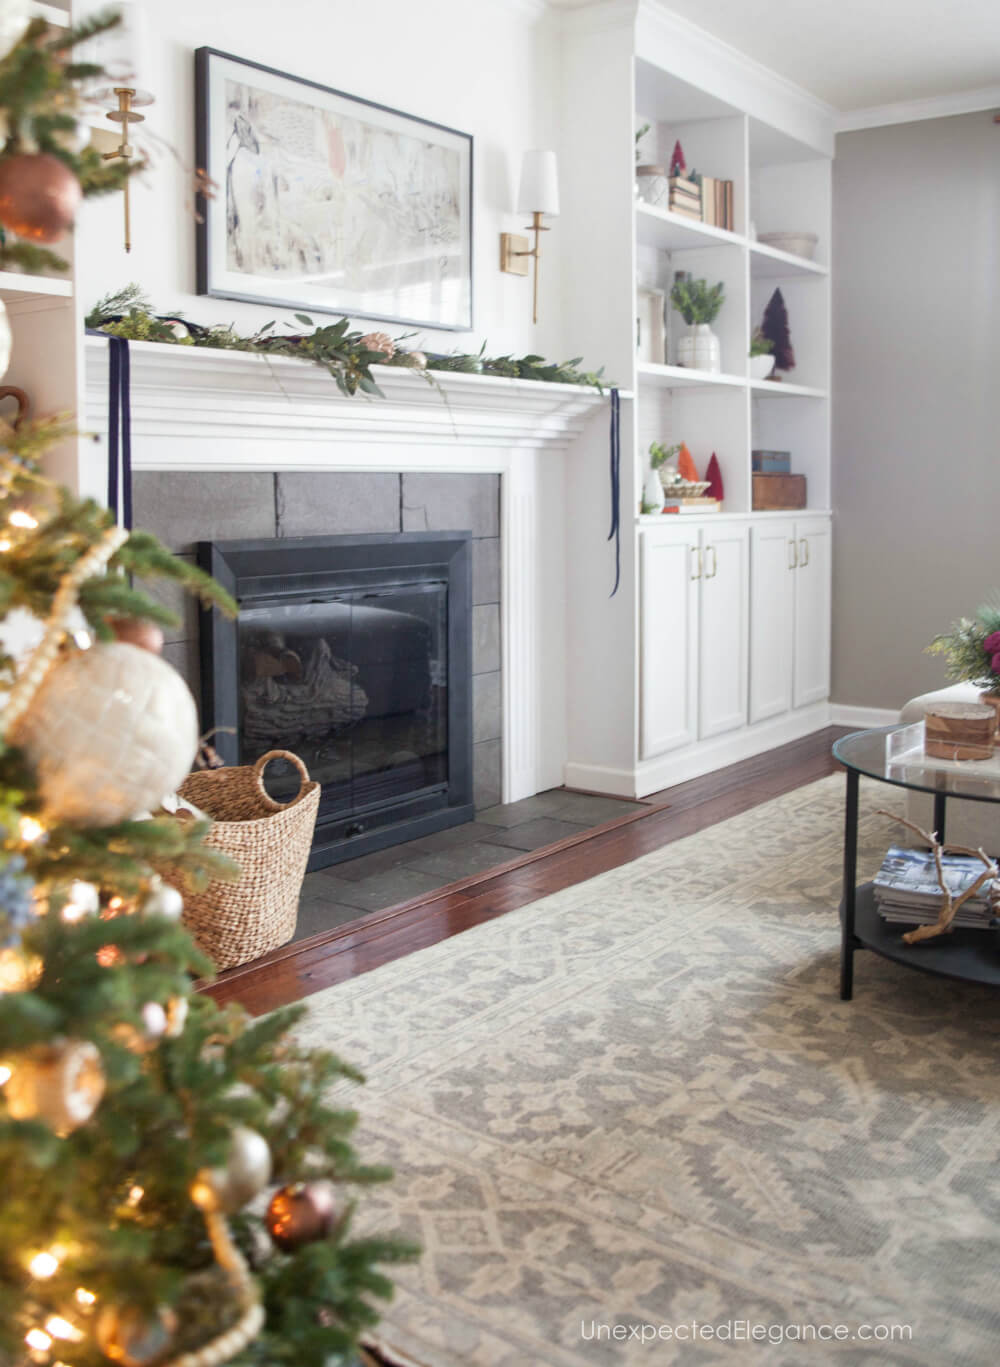 Simple and Cozy Christmas Decor | Unexpected Elegance